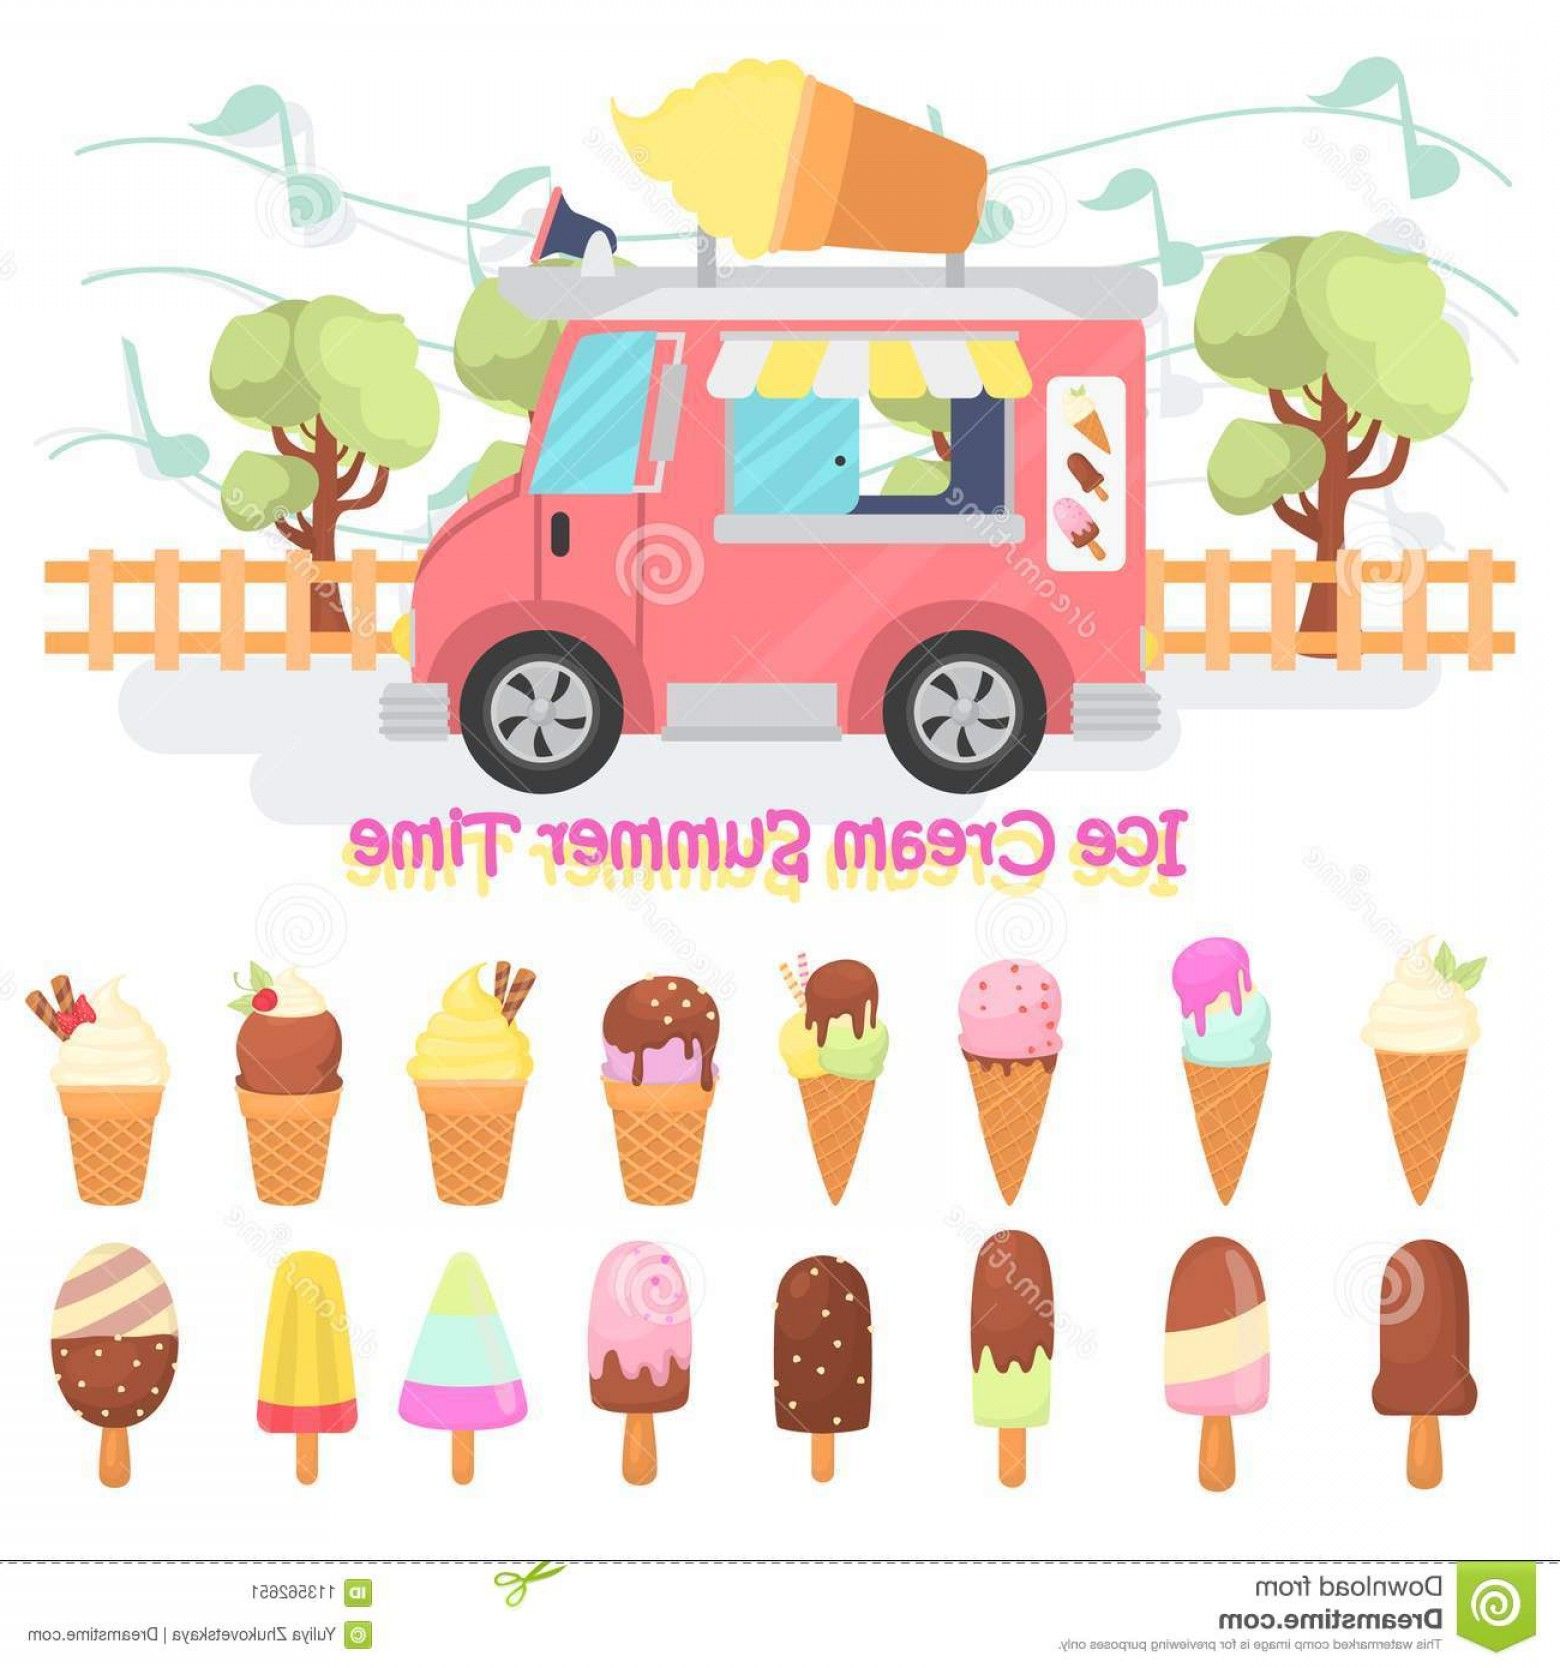 Wen Vehicle Vector Art: Different Tastes Ice Cream Color Flat Icons Set Ice Cream Mobile Van Street Illustration Different Tastes Ice Cream Color Flat Image